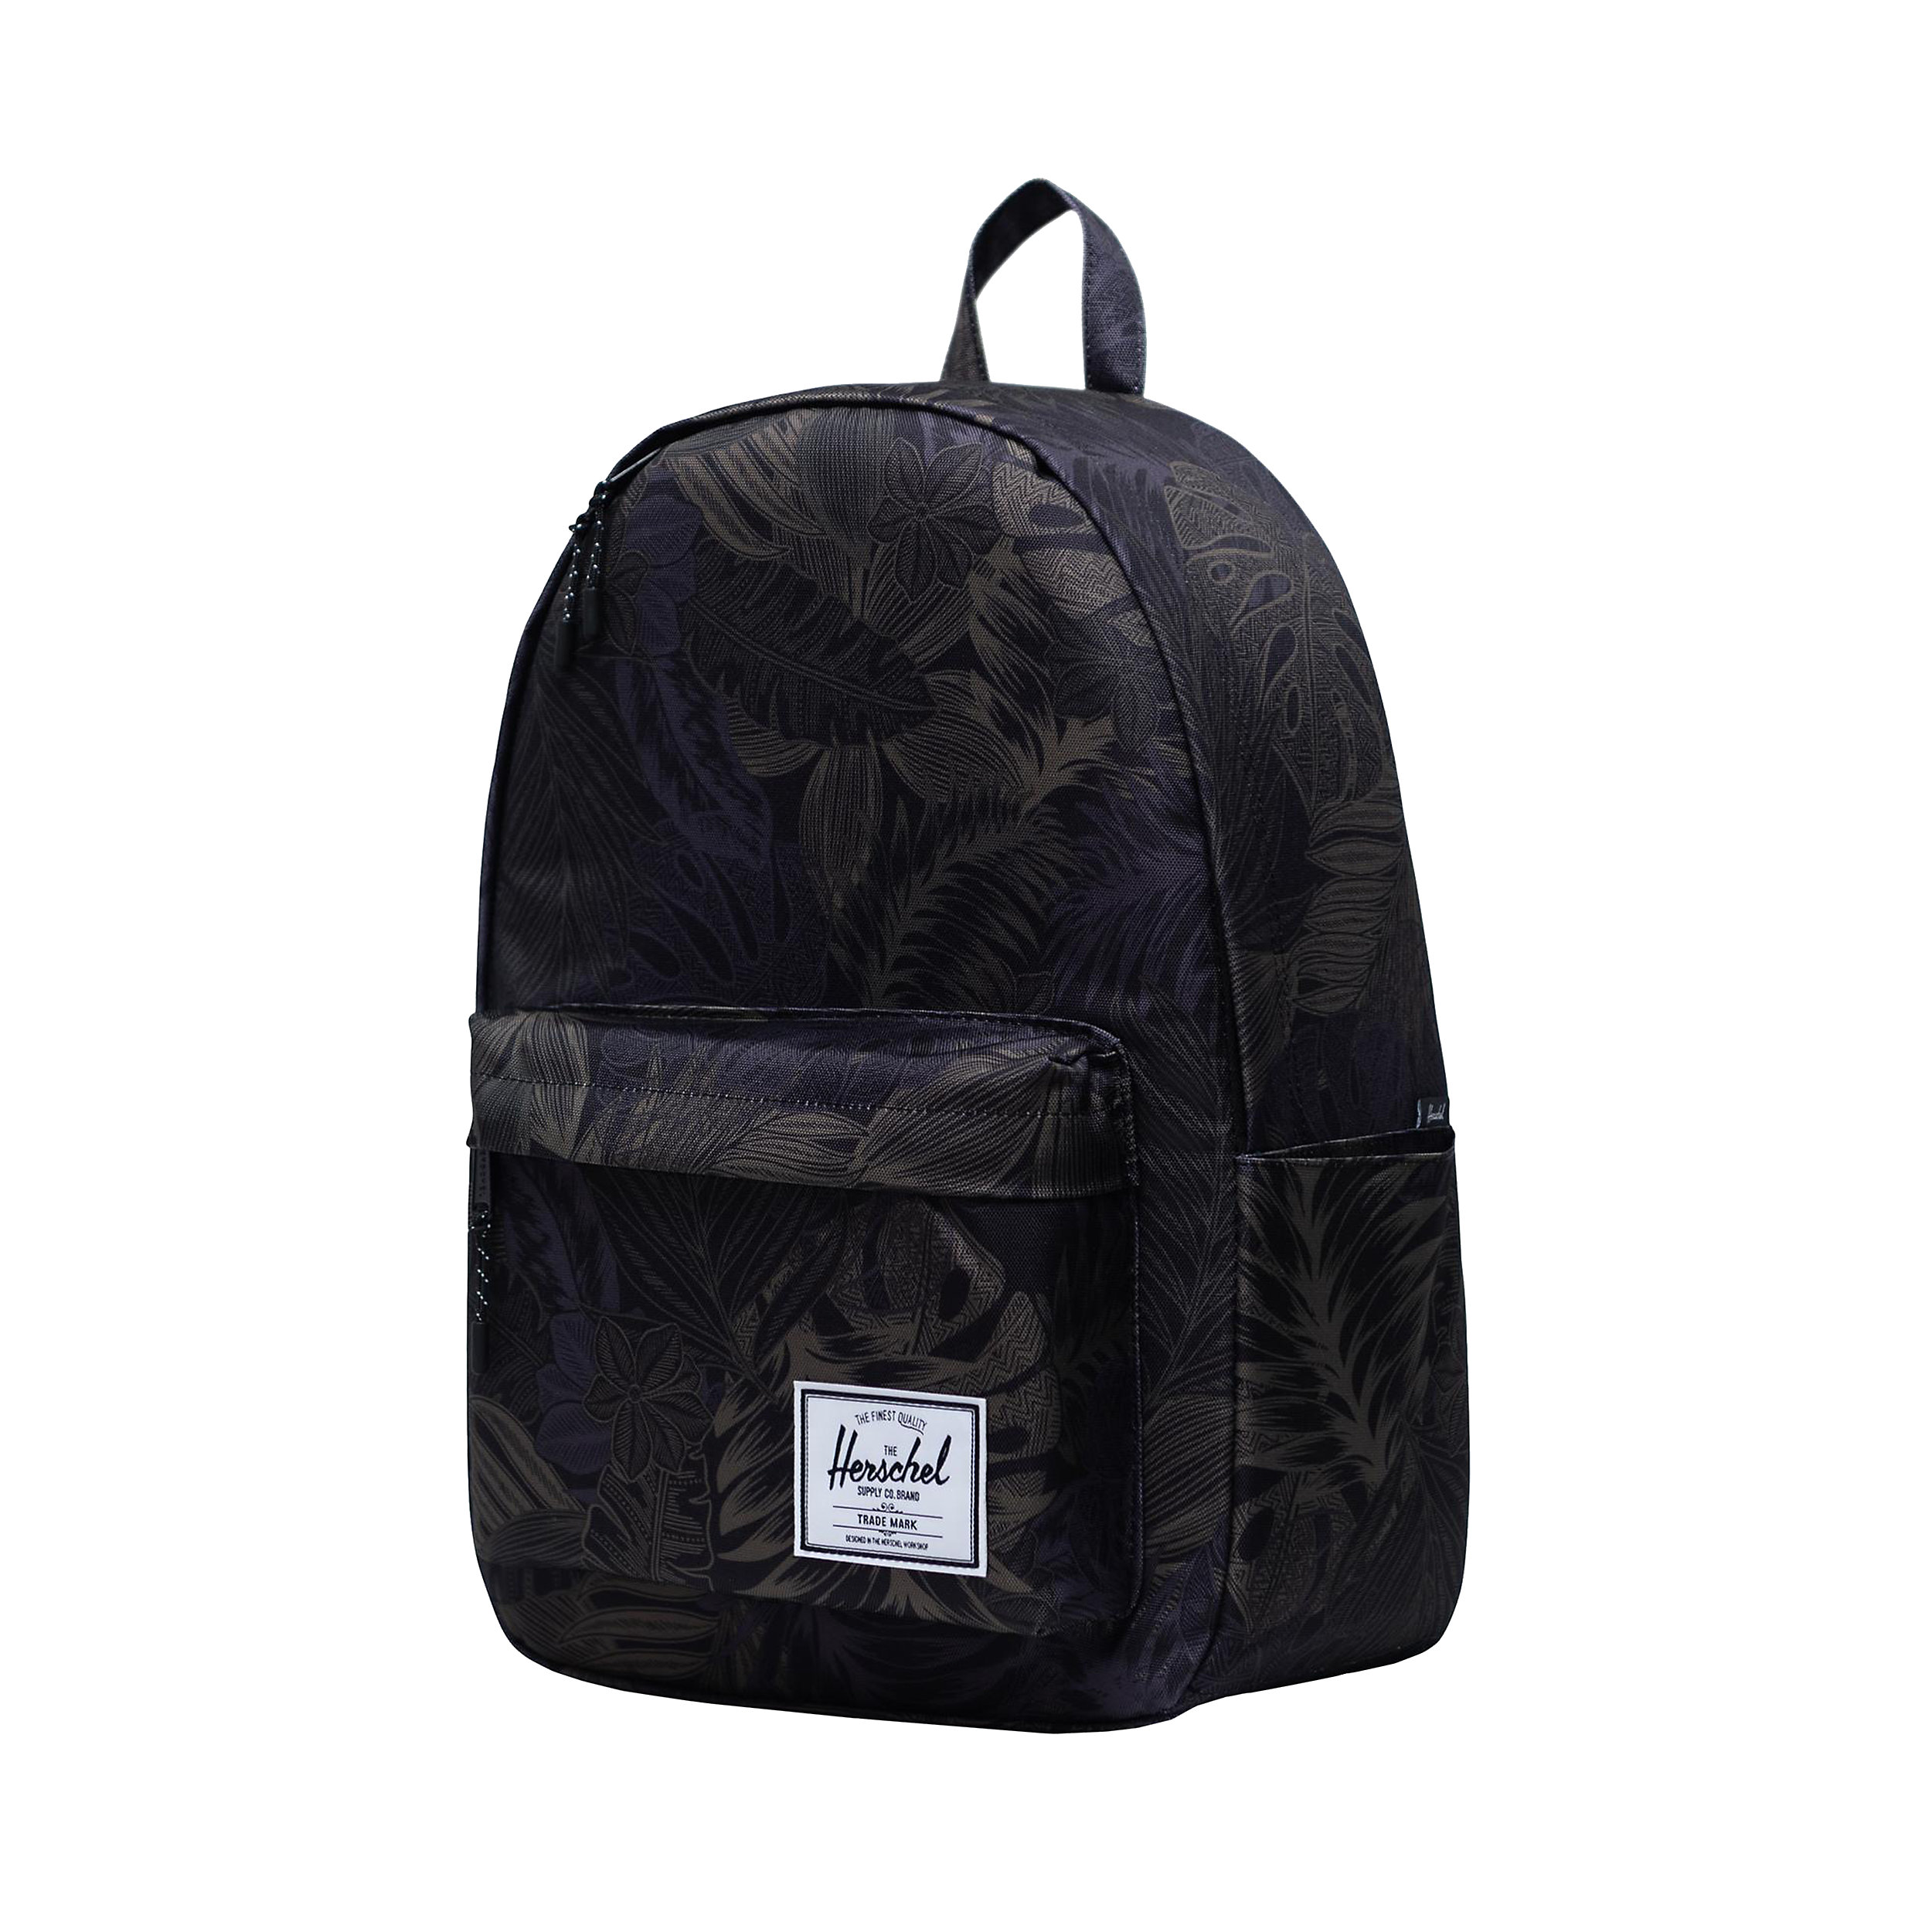 "Backpack Classic X-Large 15"" 30 Liter"